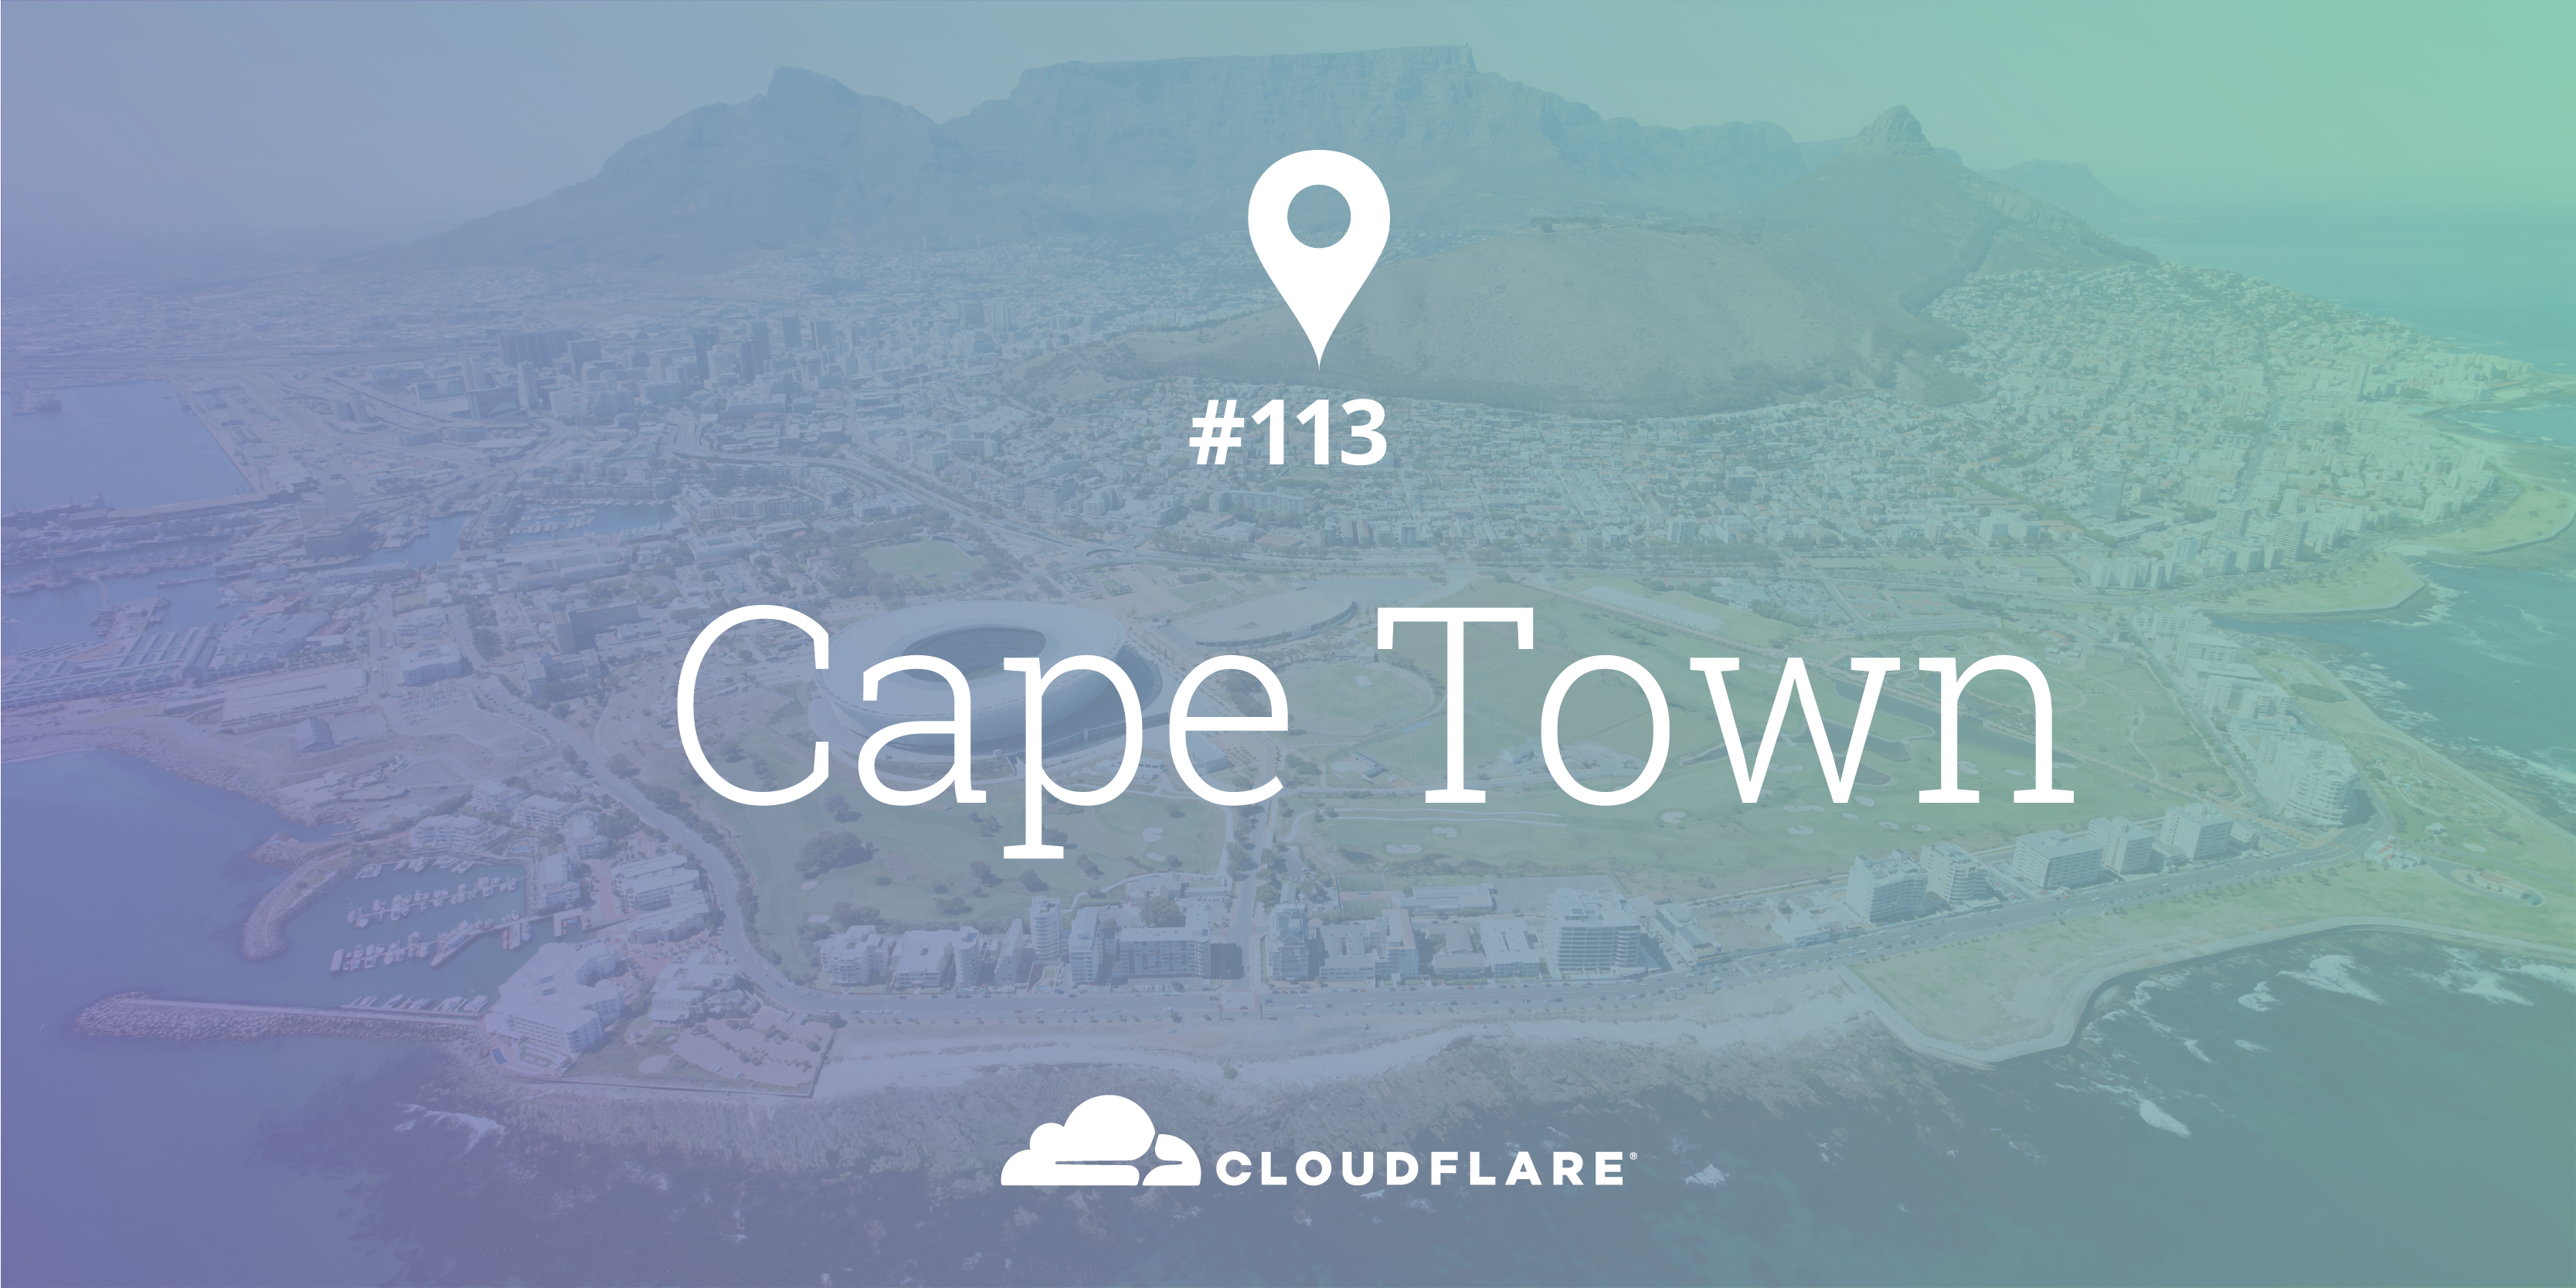 Cape Town (South Africa): Cloudflare Data Center #113